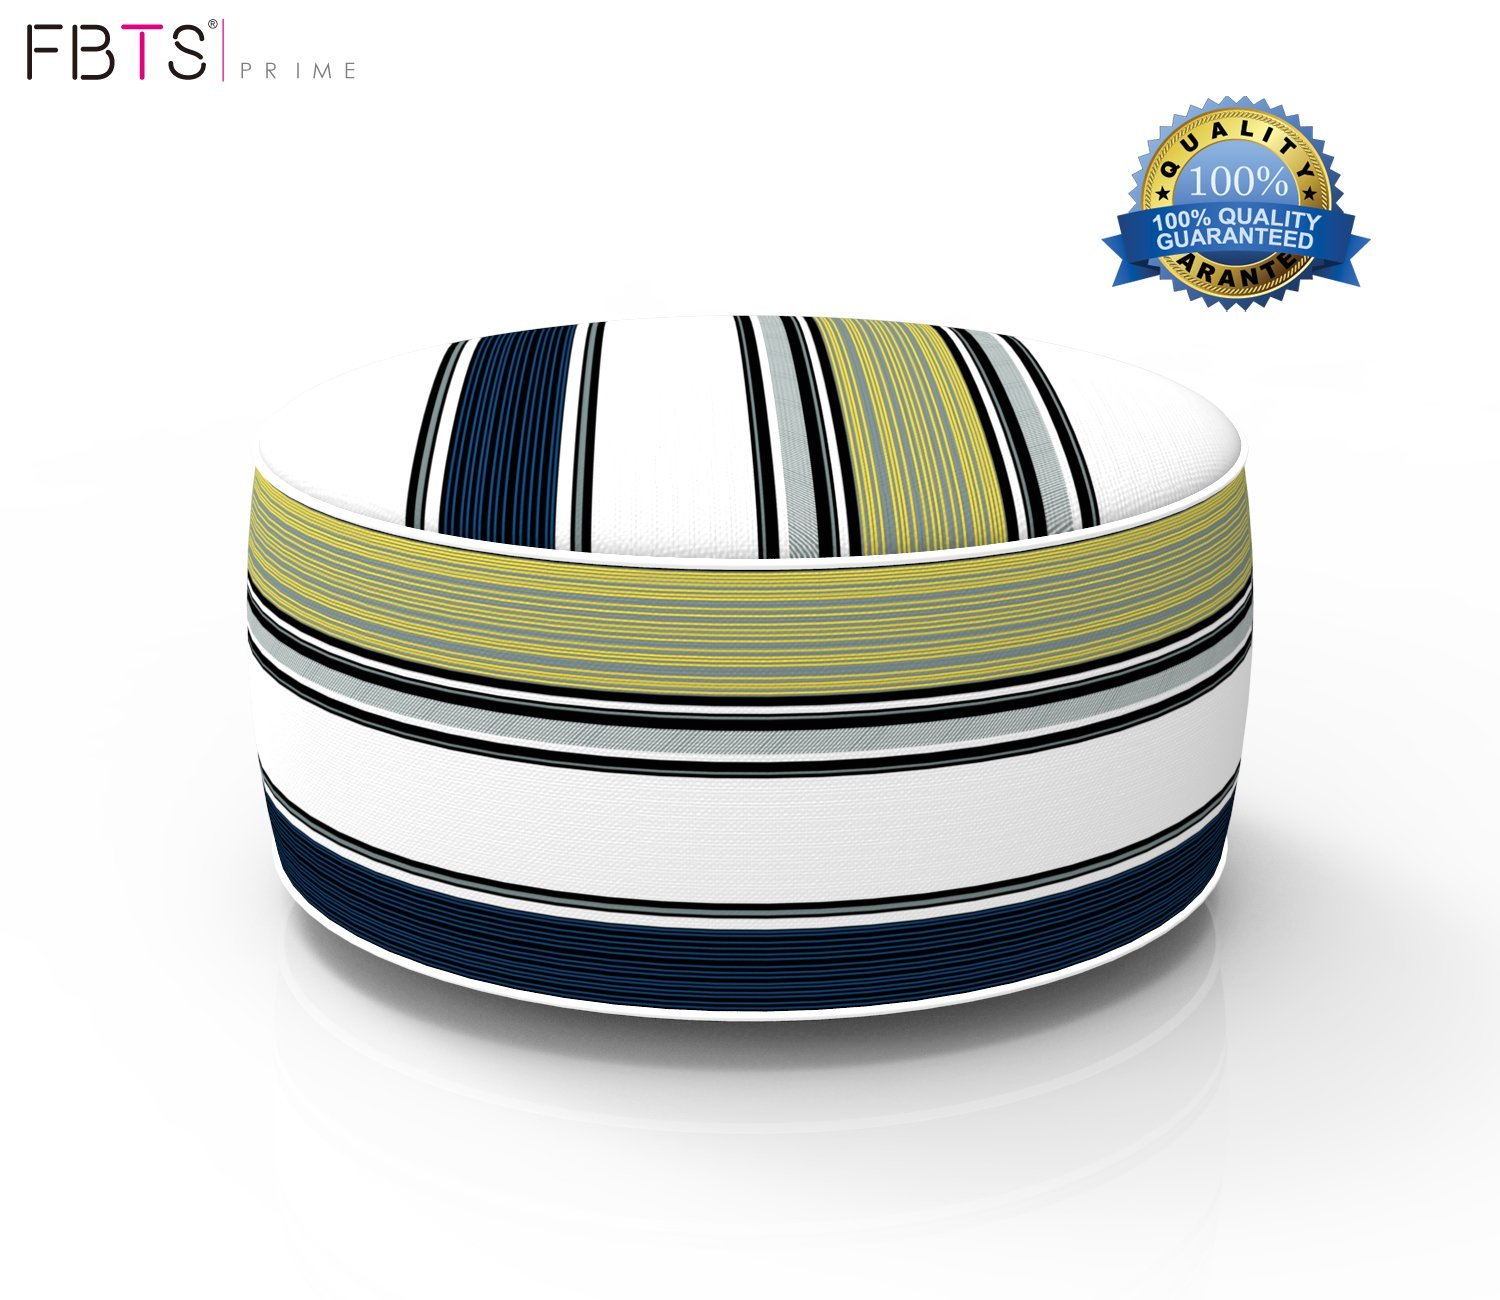 FBTS Prime Outdoor Inflatable Ottoman Navy and Yellow Stripe Round Patio Foot Stools and Ottomans Suitable for Kids and Adults Portable Travel Footstool Used for Outdoor Camping Home Yoga Foot Rest